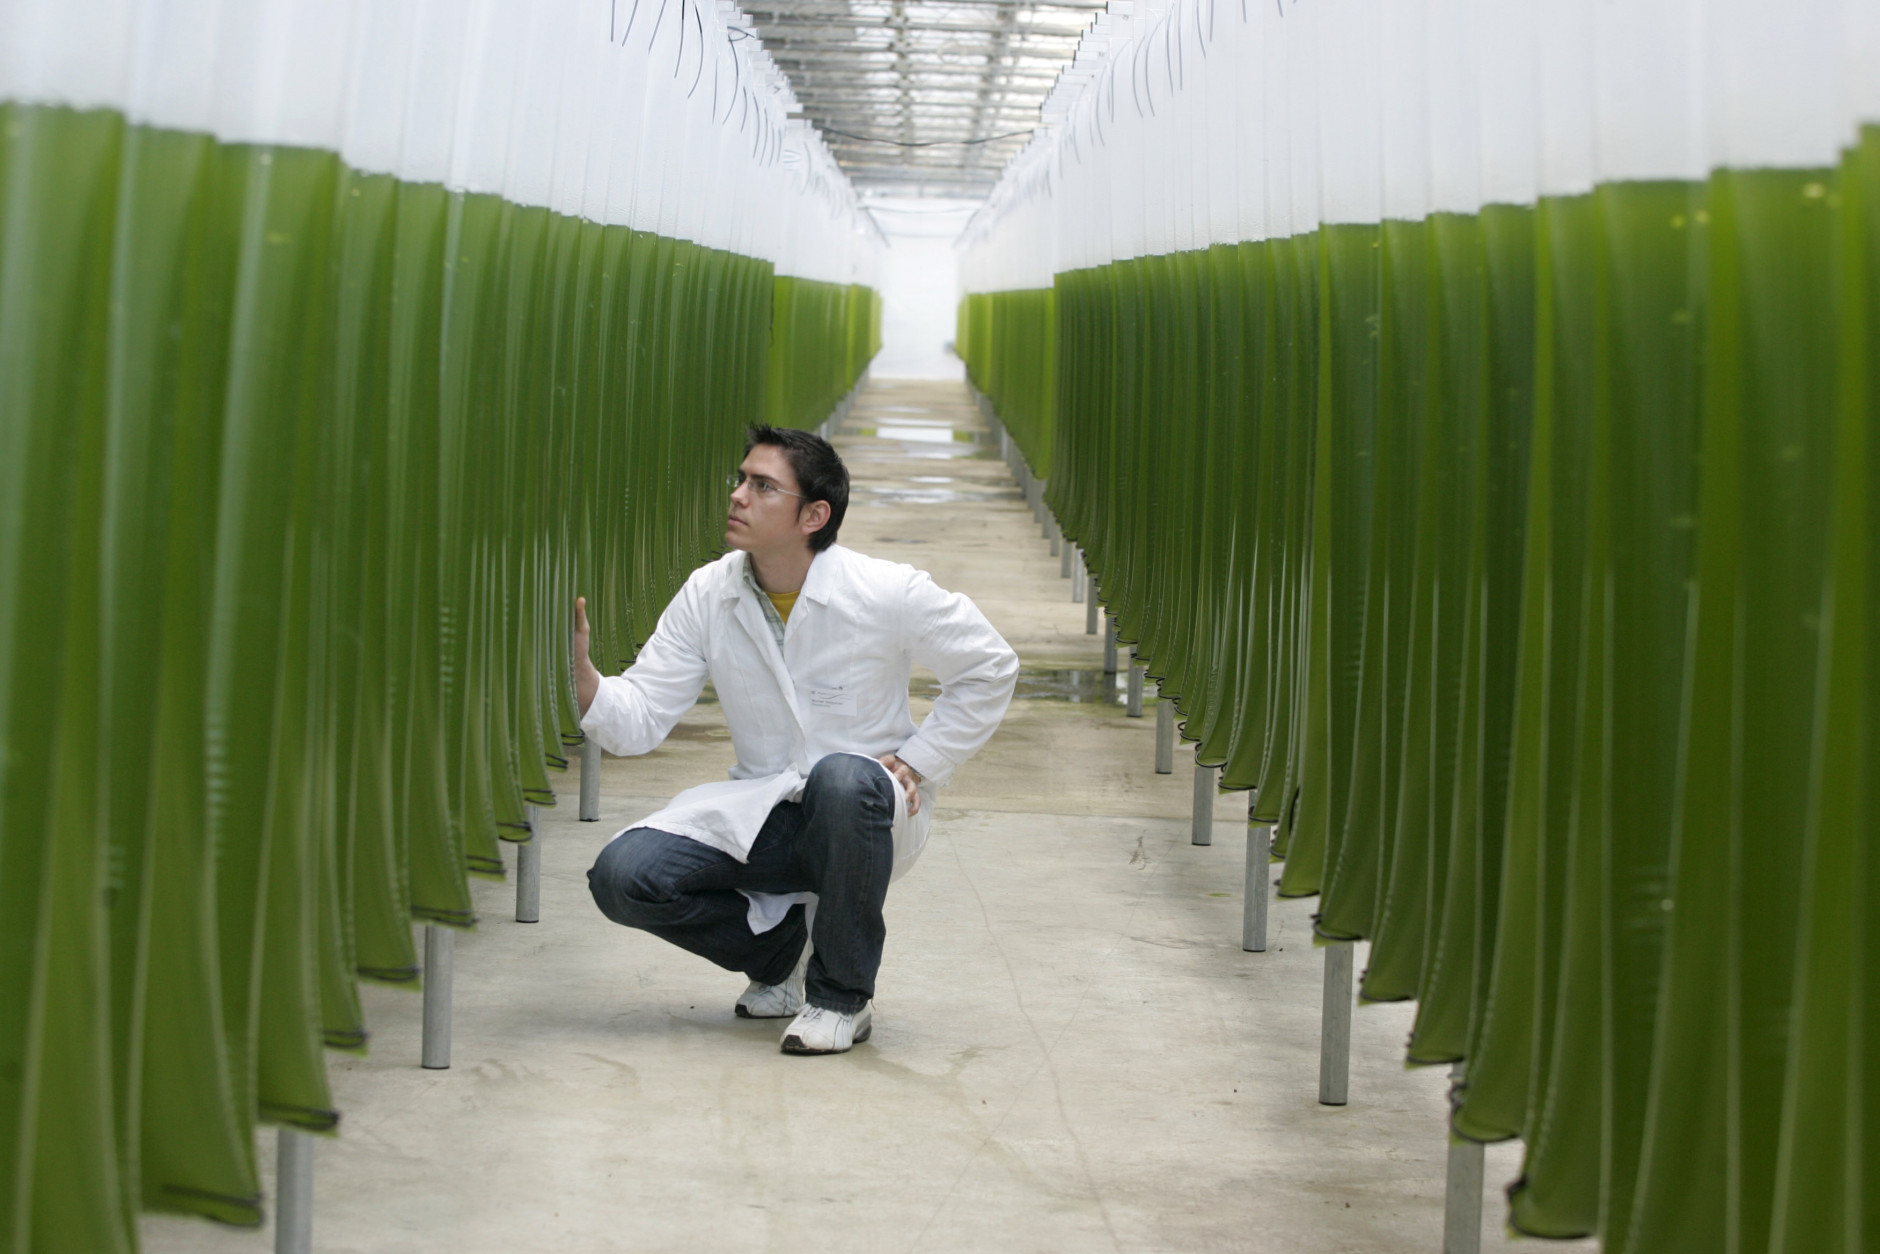 Food and health experts are dubbing algae the nation's next big superfood.